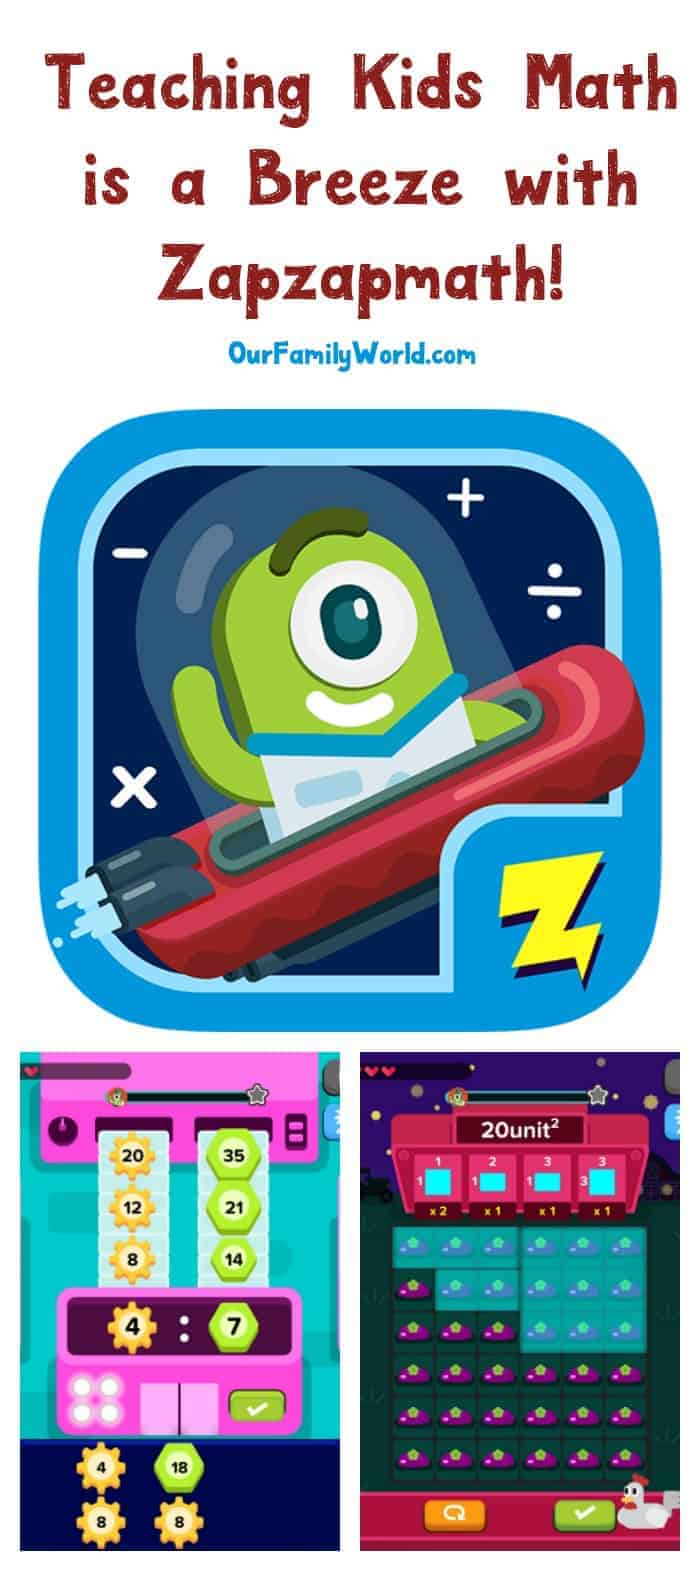 Looking for a fun way to teach kids from ages 5-12 everything they need to know about math? You're going to love Zapzapmath. It's so fun, even I'm addicted to it!